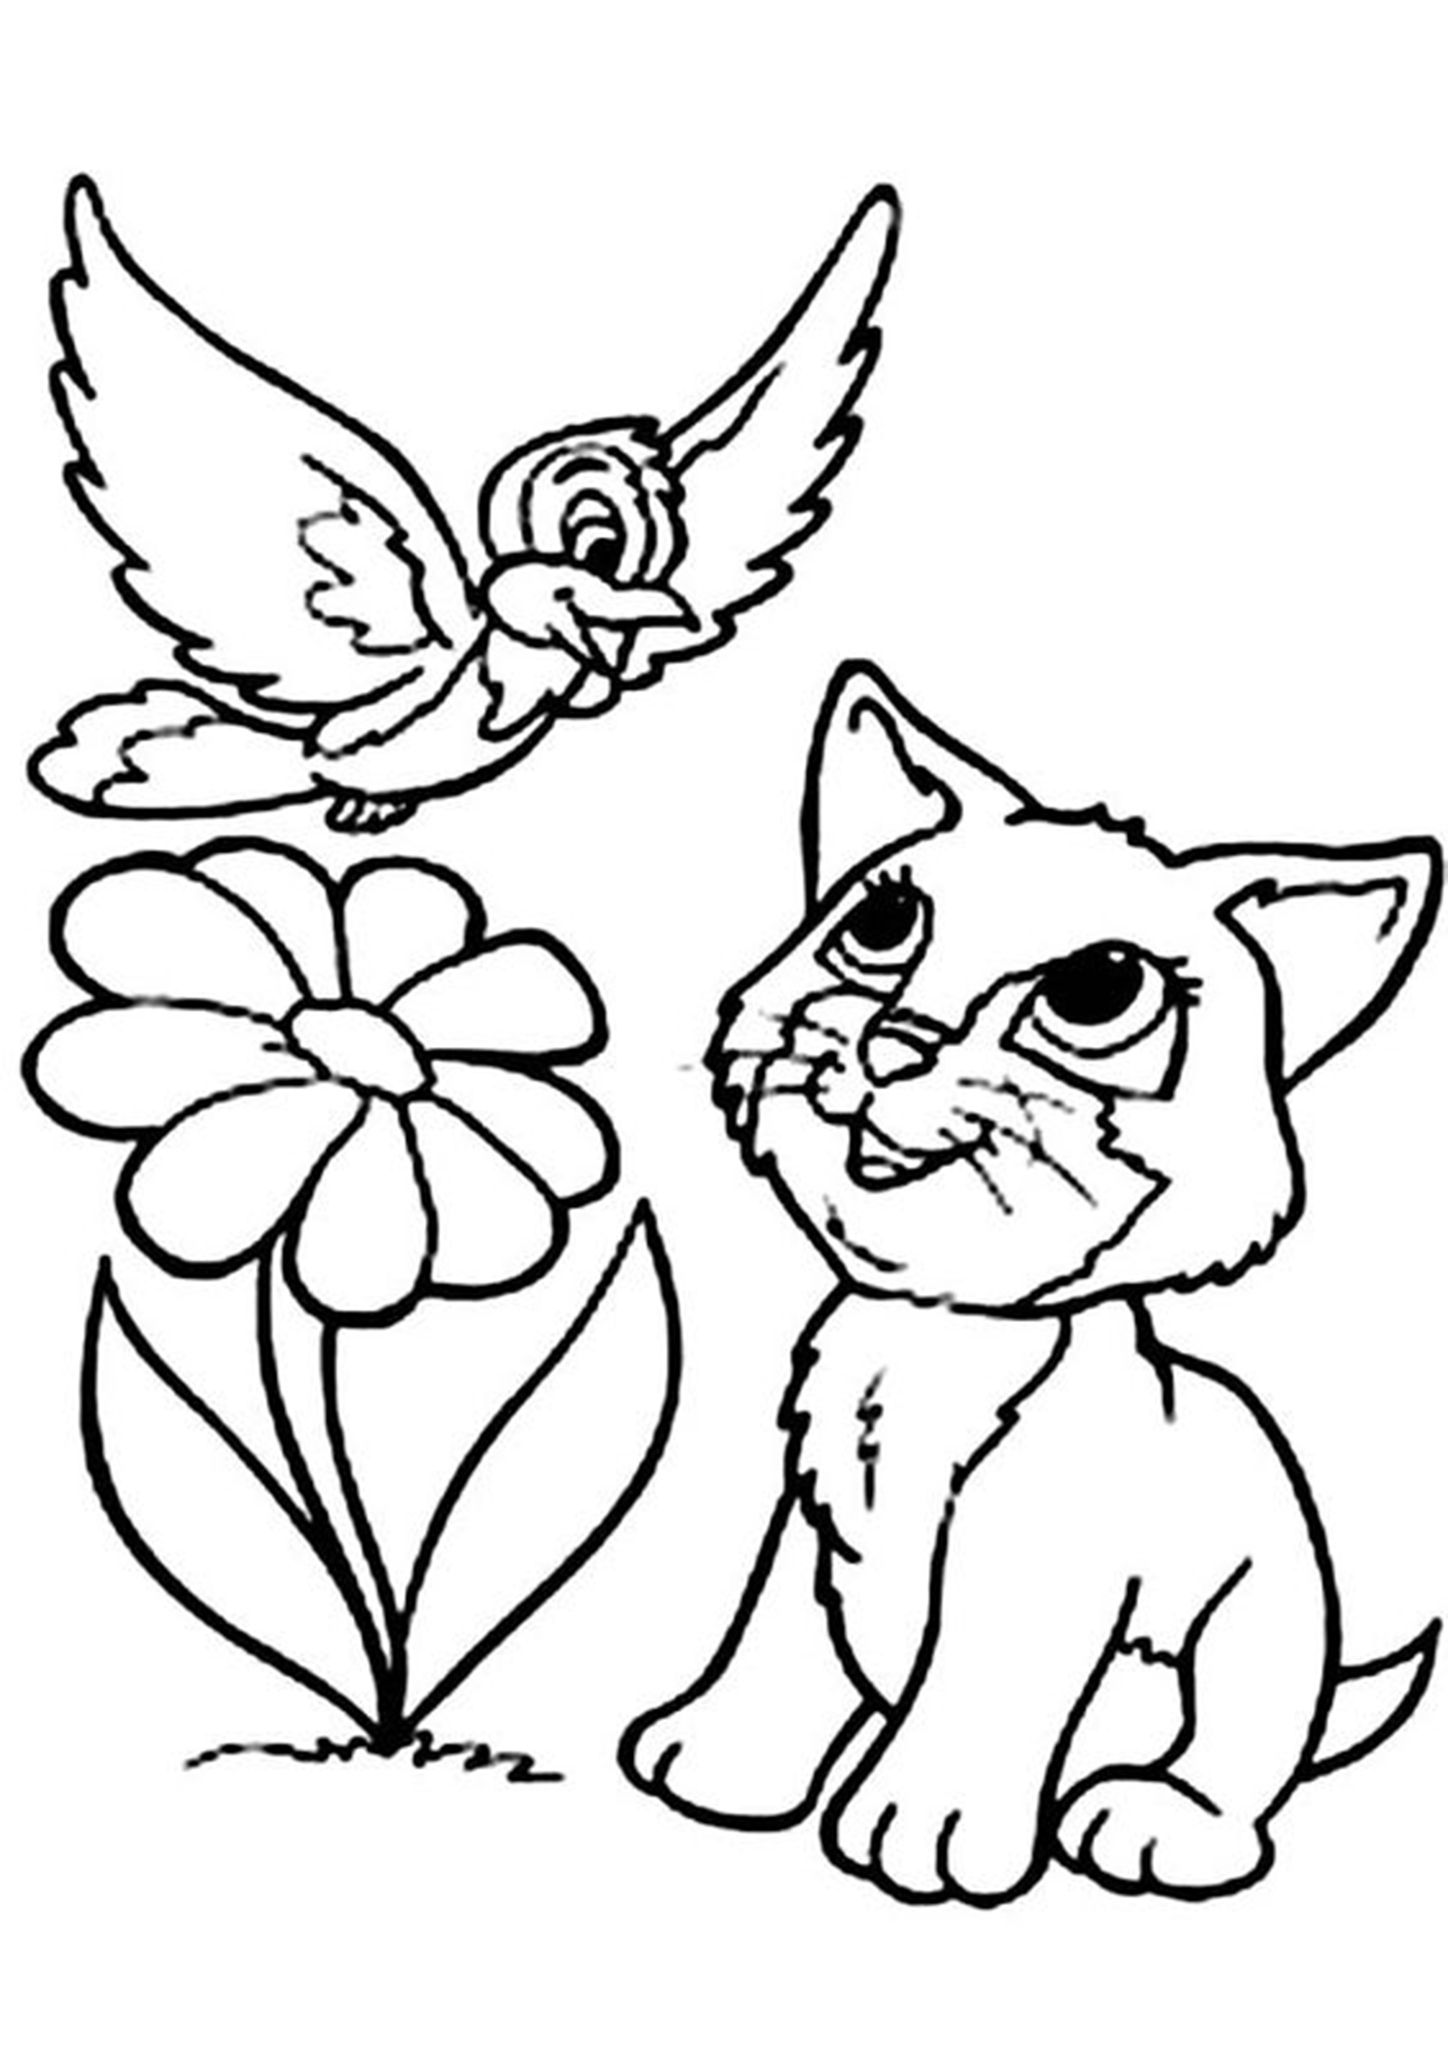 Free Easy To Print Kitten Coloring Pages Bird Coloring Pages Animal Coloring Pages Kittens Coloring